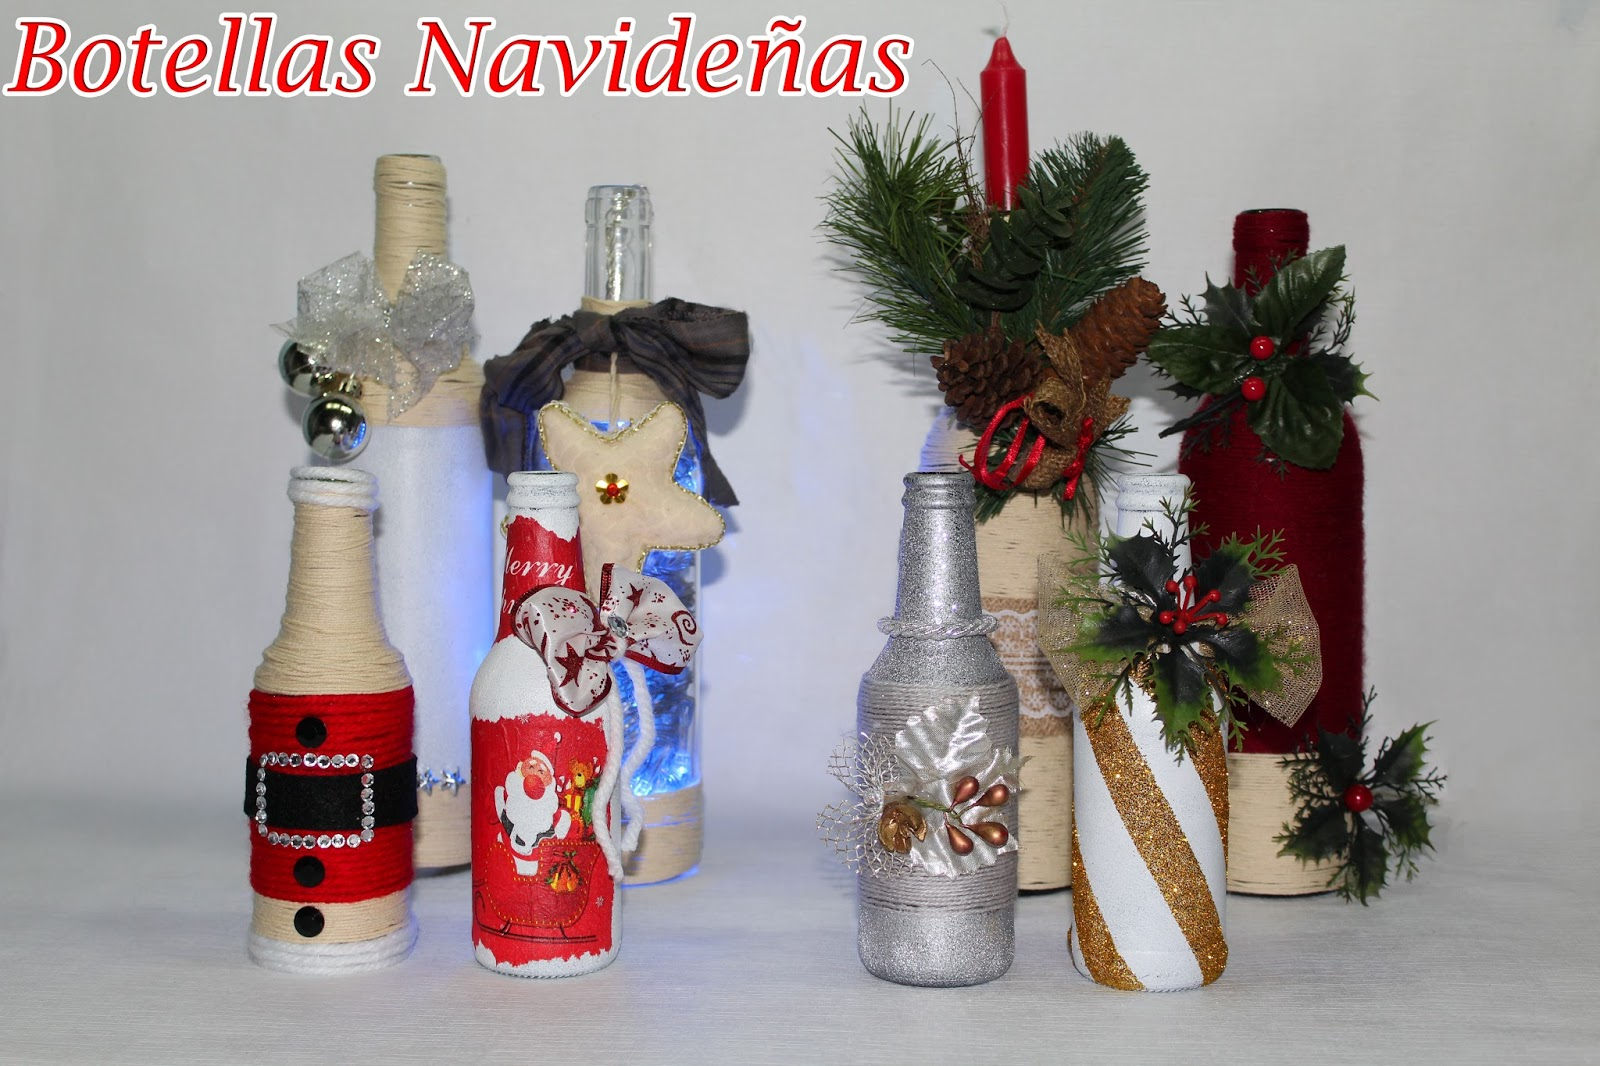 Manualidades herme 8 botellas decoradas navide as - Adornos navidenos con botellas ...